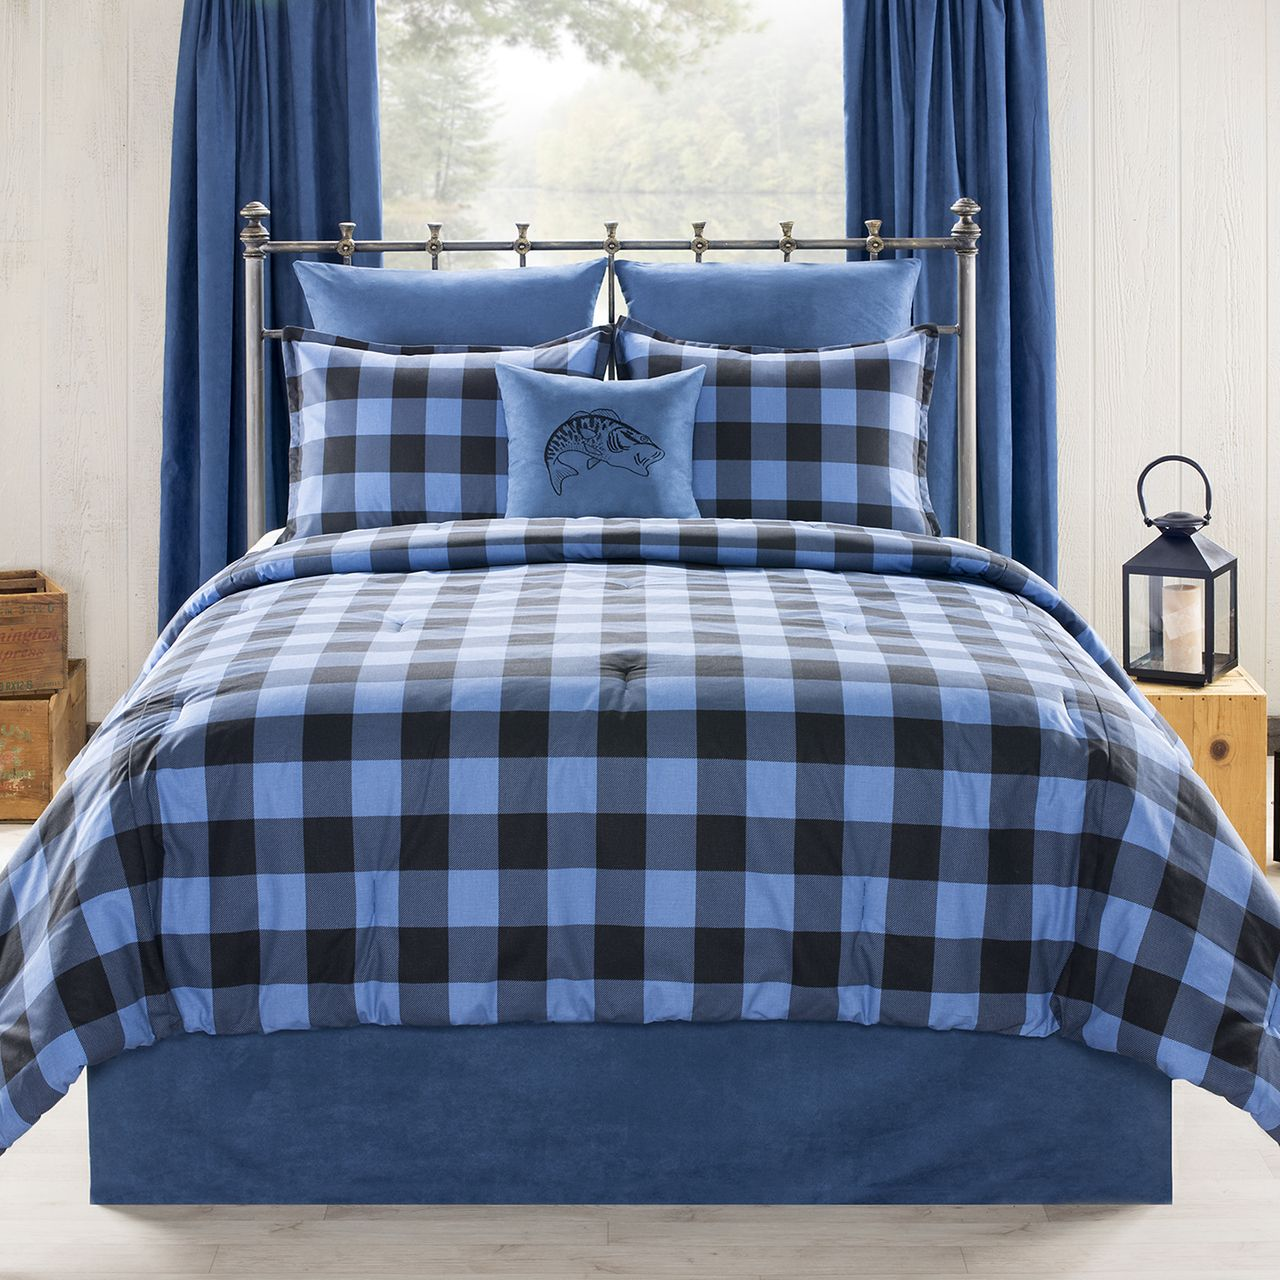 Comforter Set Bedding Curtain Valance The Curtain Shop